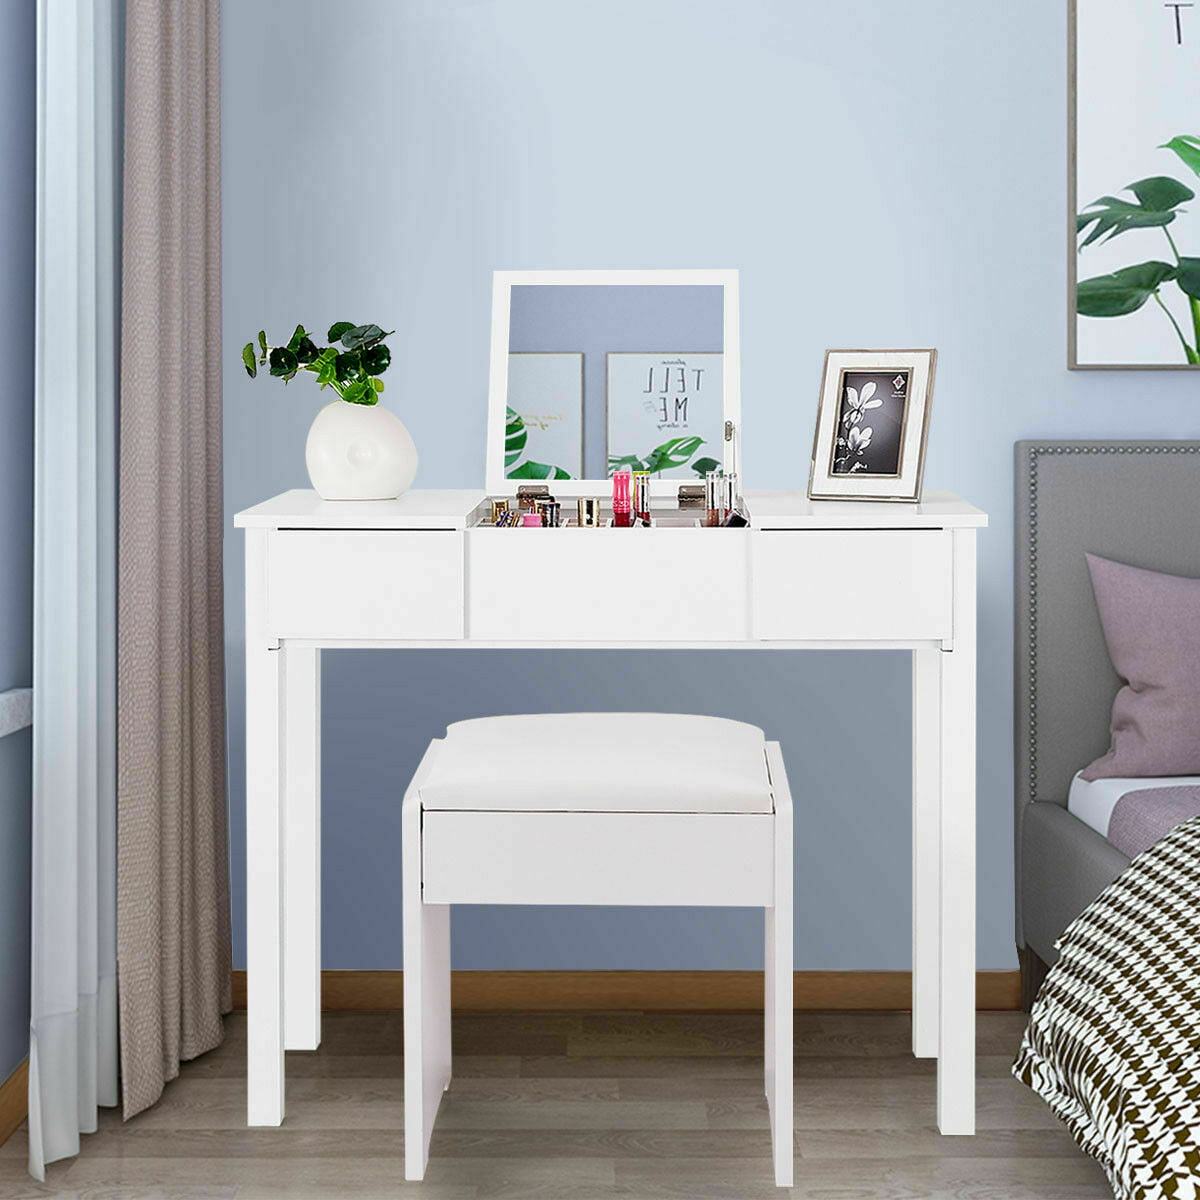 Costway White Vanity Dressing Table Furniture Stool Storage Box Walmart Com Walmart Com